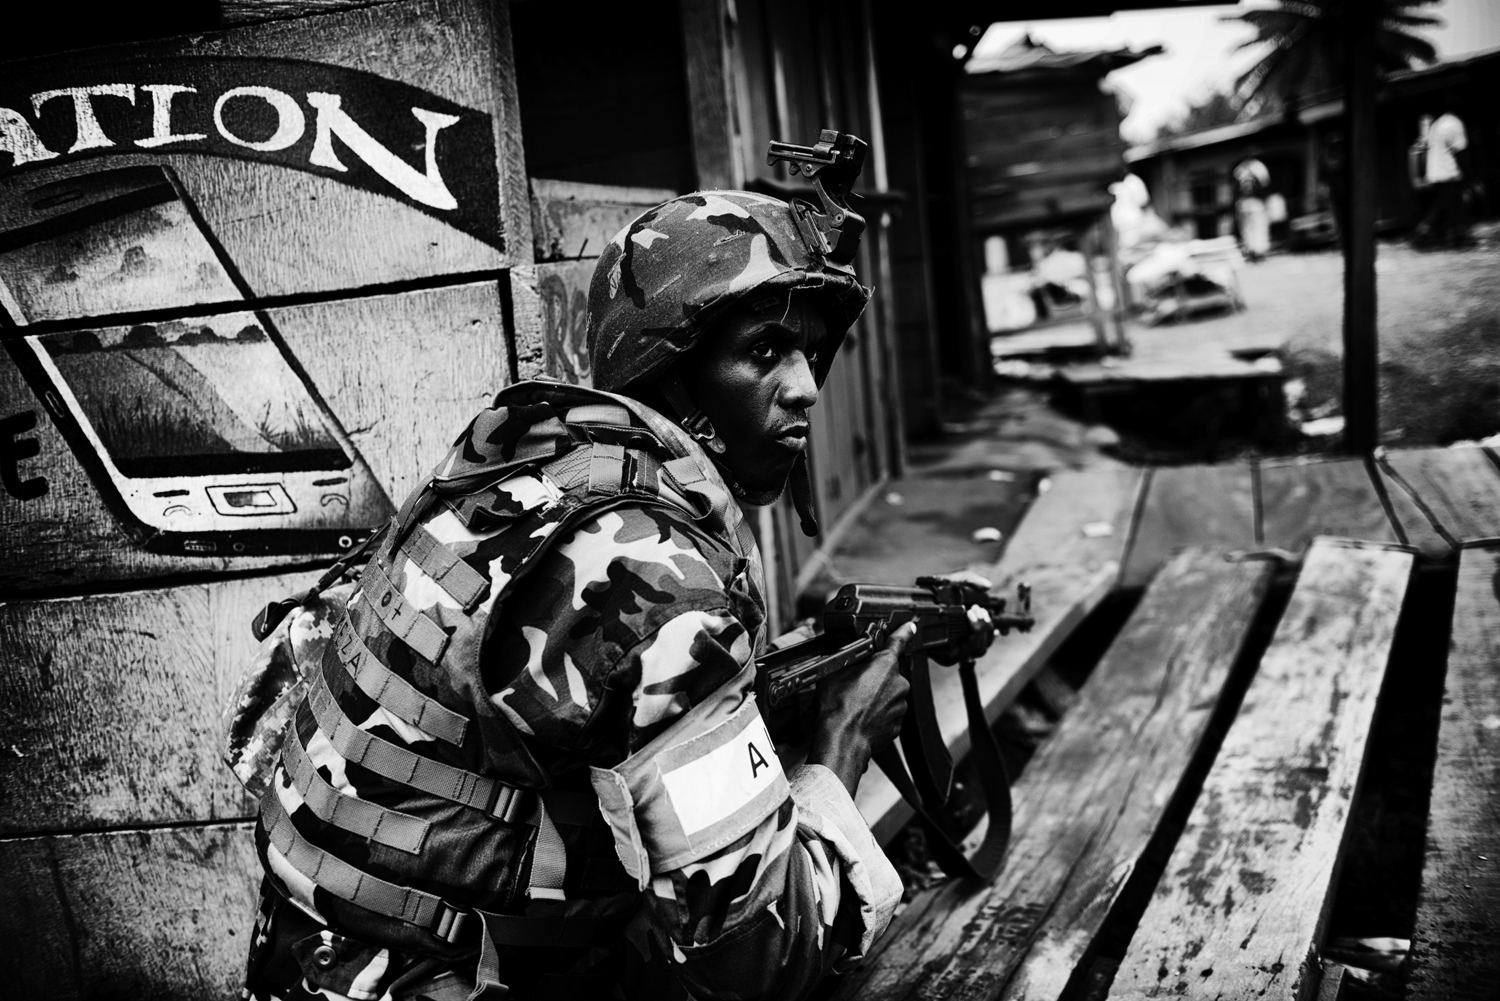 Burundian troops fight against ex-members of Séléka who are hiding in homes of the capital's Miskine district. Feb. 1, 2014.